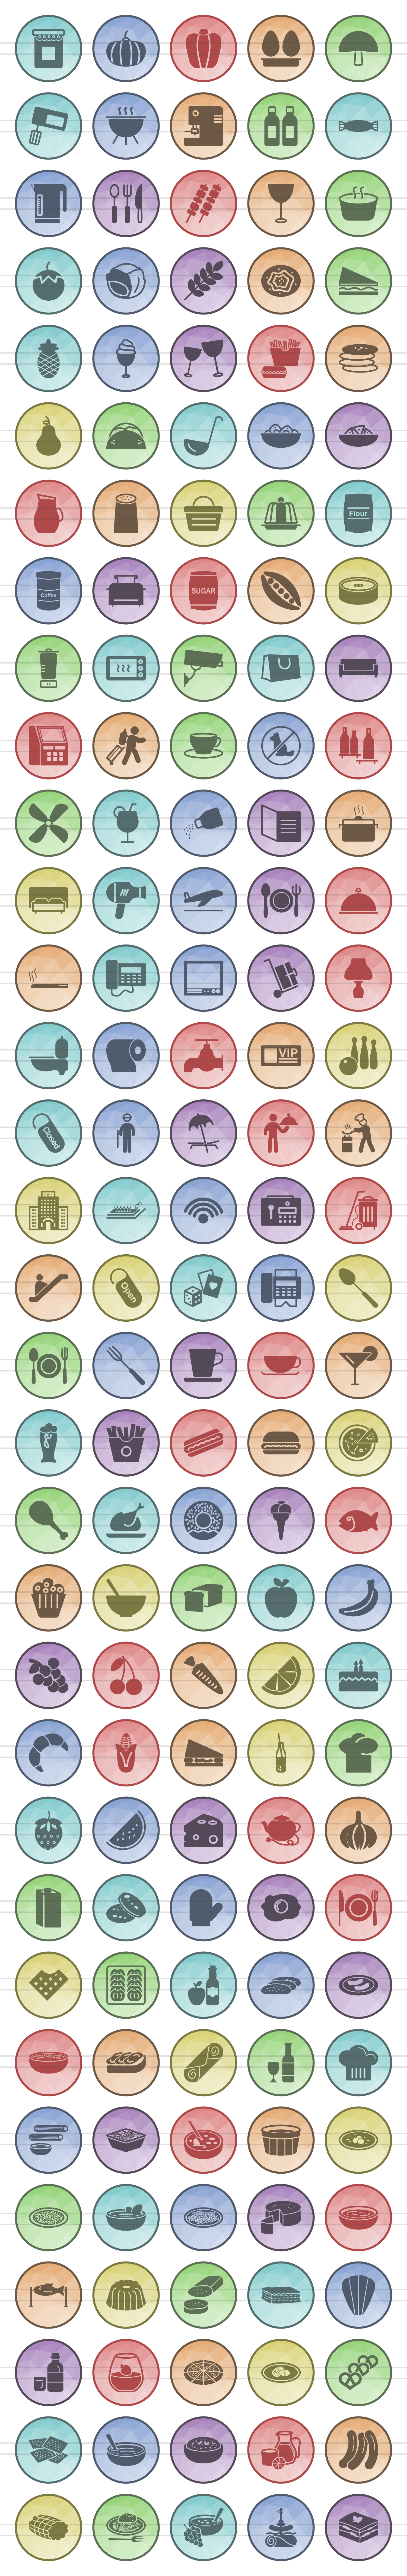 166 Restaurant & Food Filled Low Poly Icons example image 2